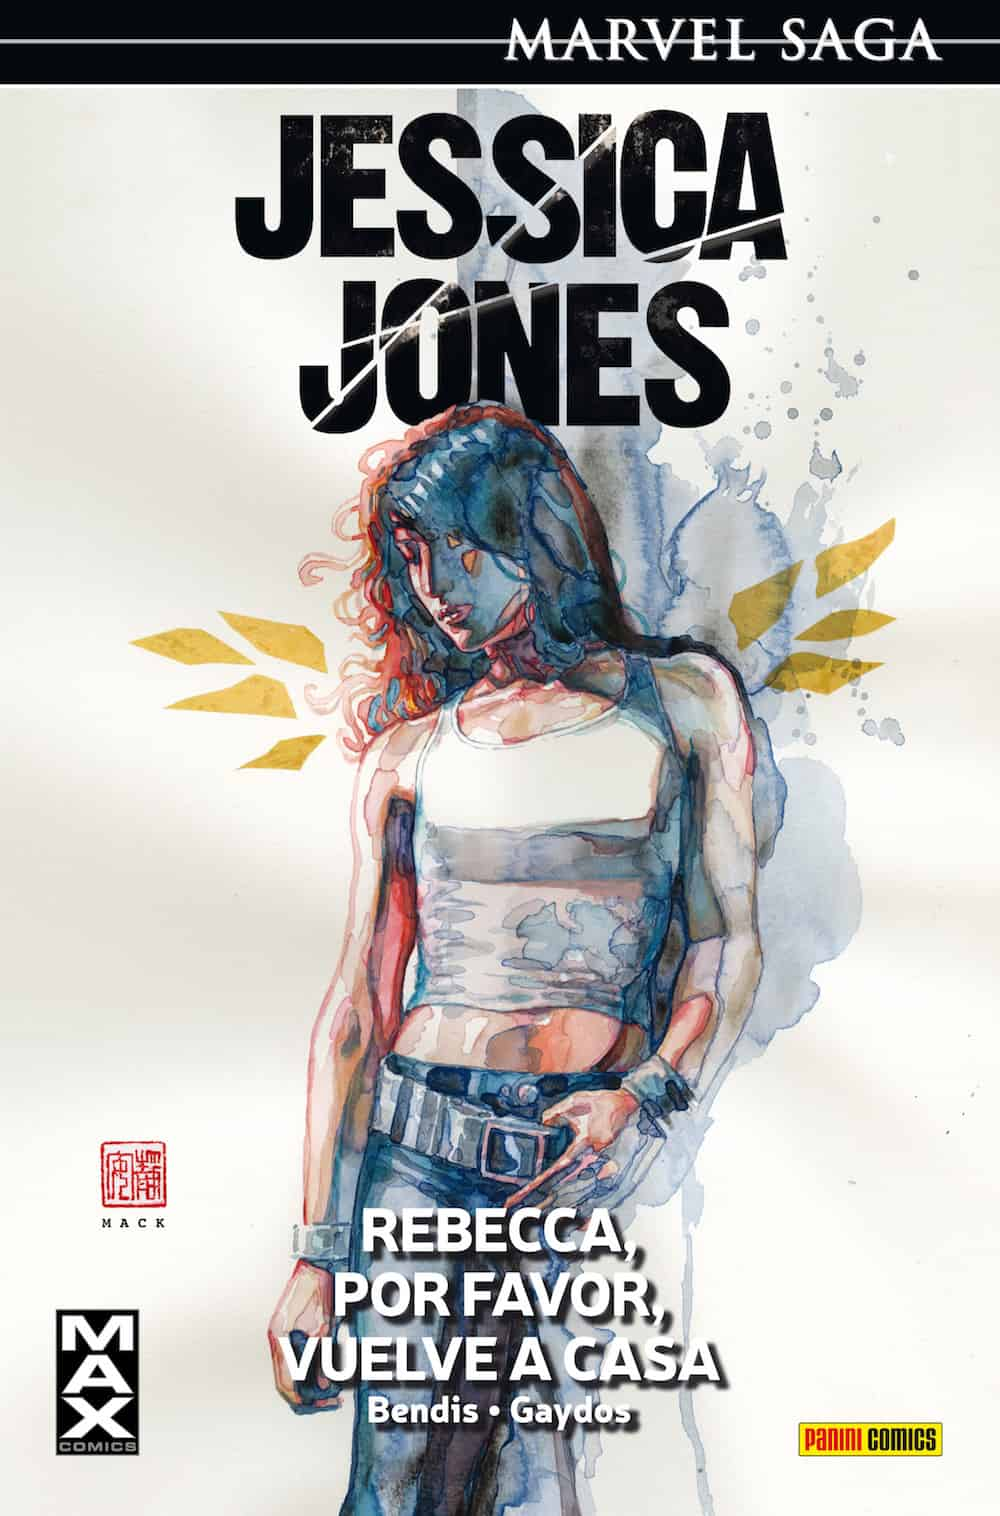 JESSICA JONES 02: REBECCA, POR FAVOR, VUELVE A CASA (MARVEL SAGA 04)